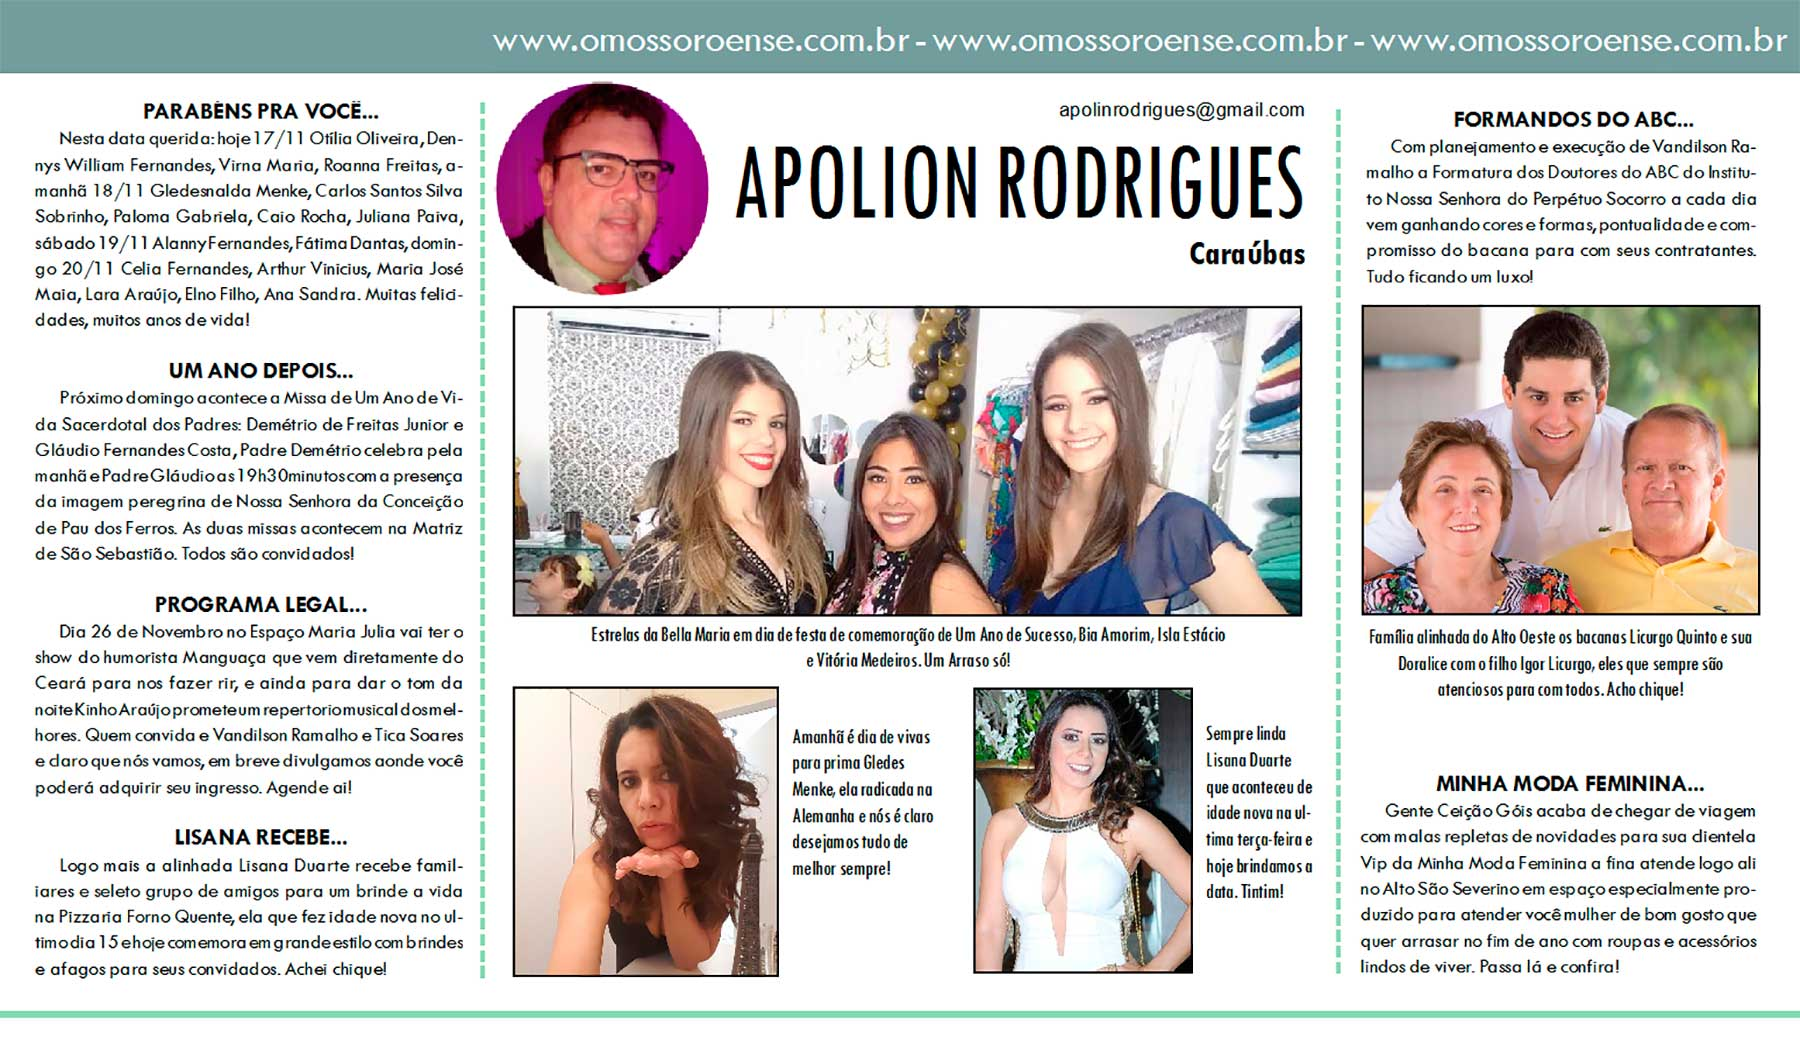 apolion-rodrigues-17-11-2016